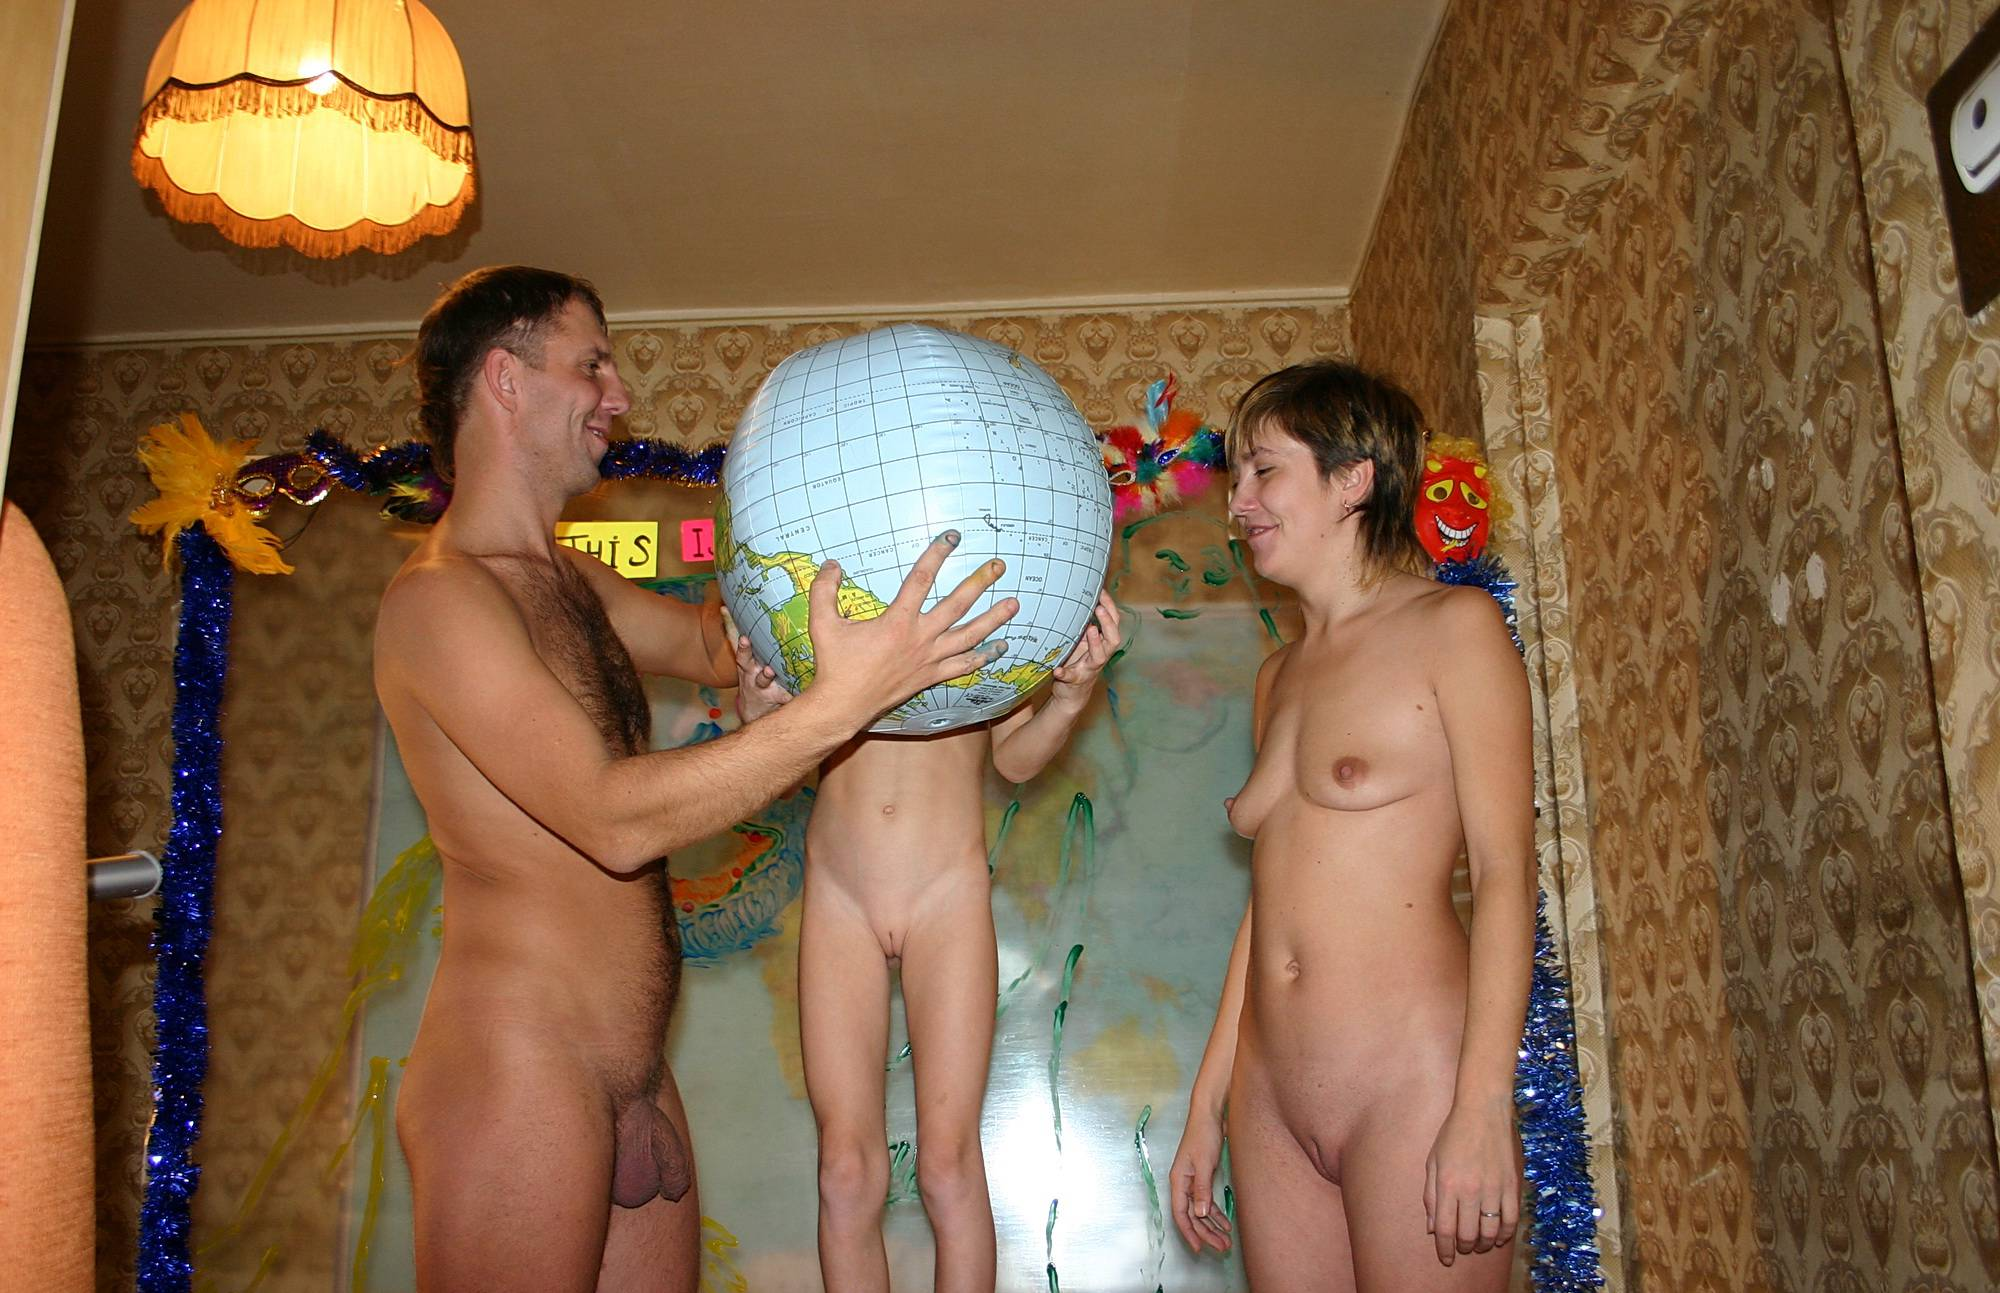 Pure Nudism-Family With Nude World - 1